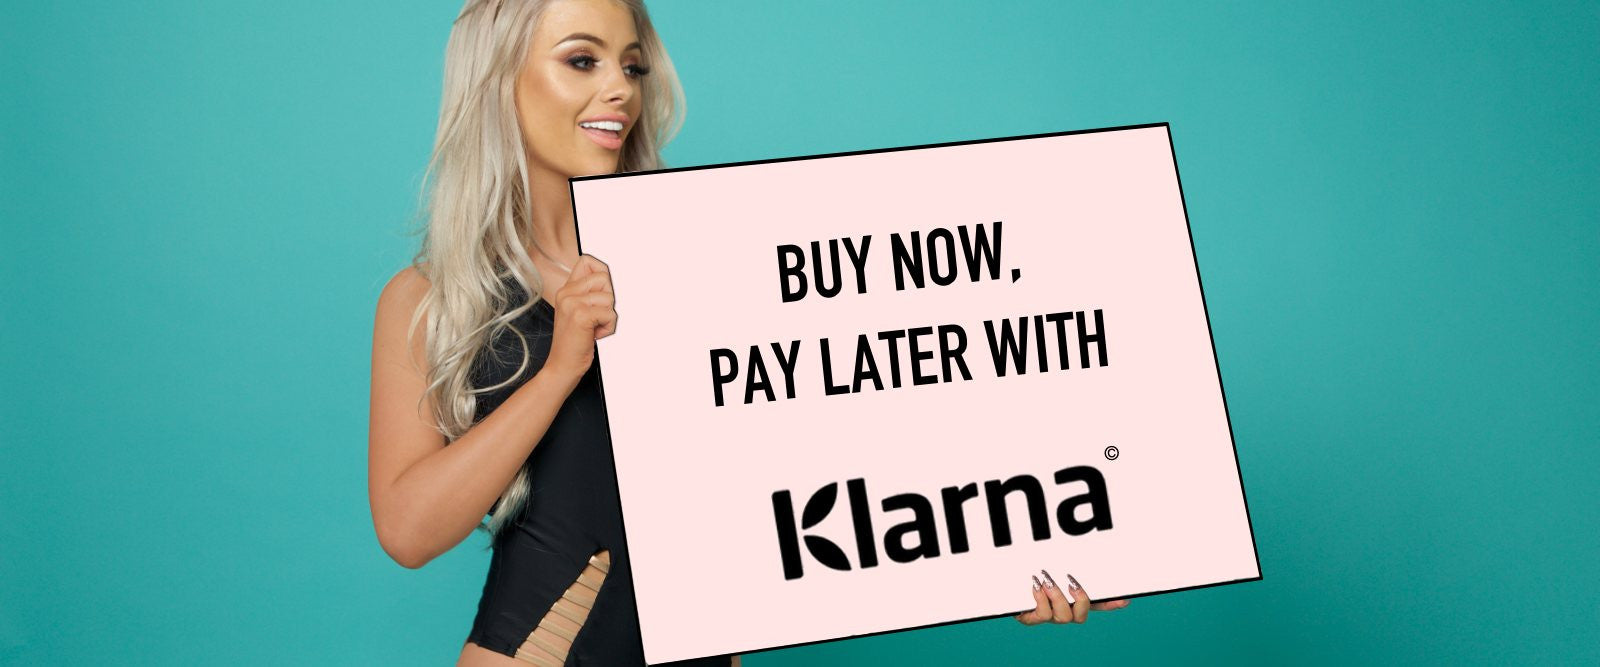 Klarna pay after delivery with AJ Voyage